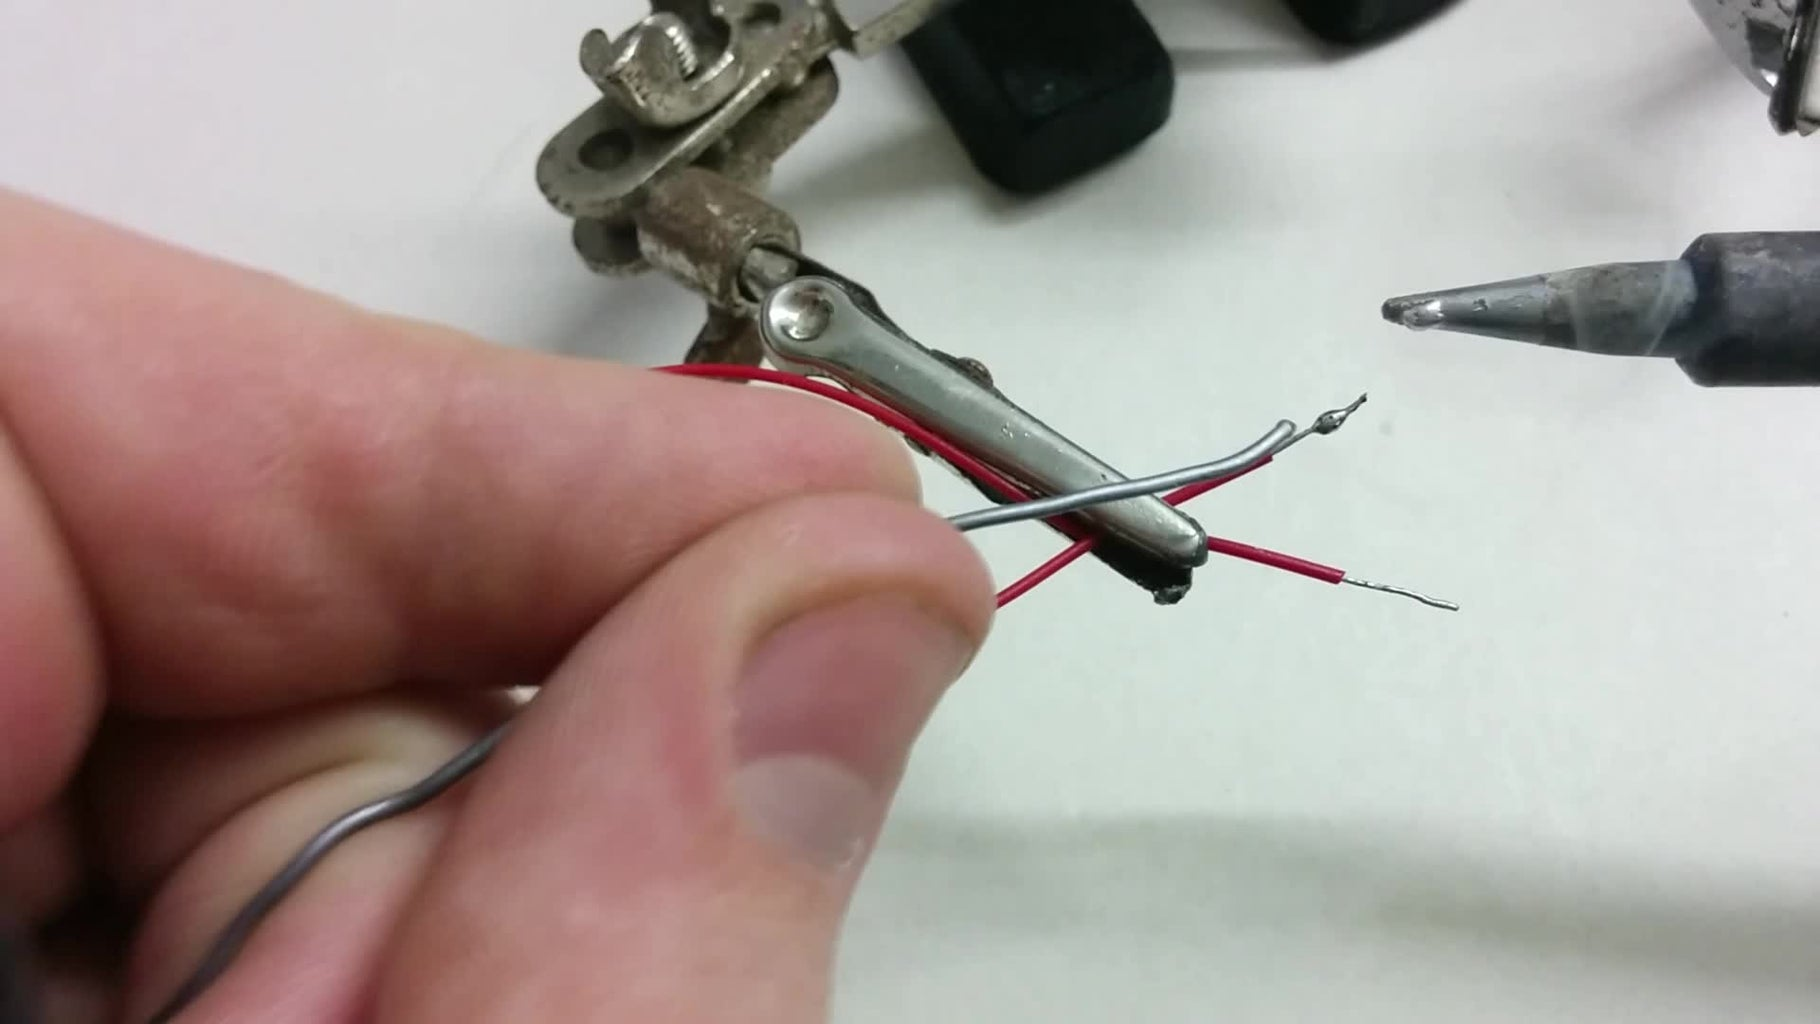 Wires and Soldering